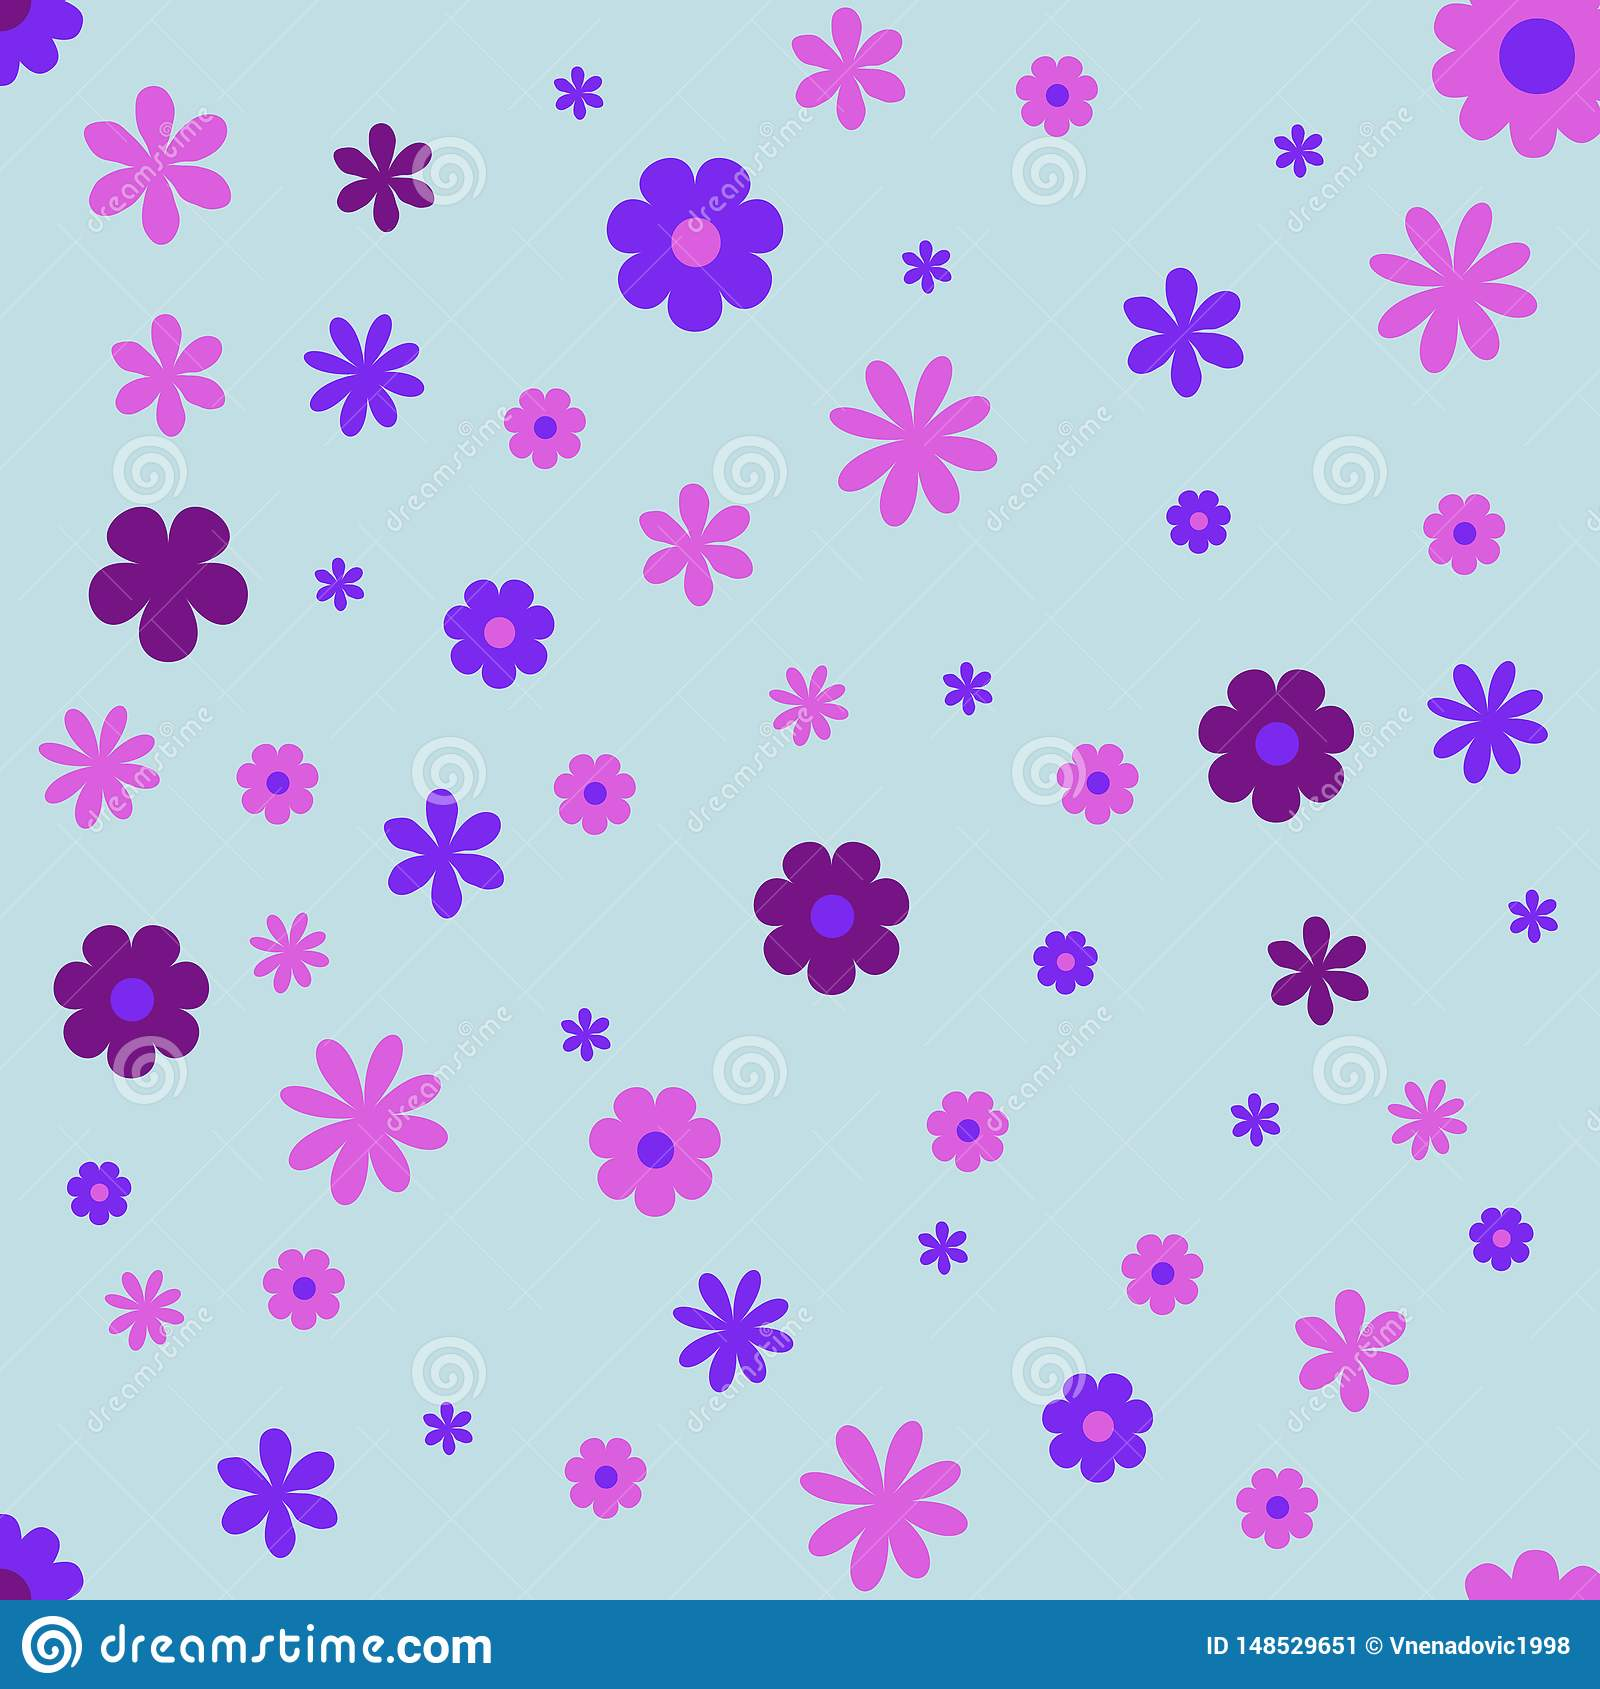 Flowers Frame wallpaper background.